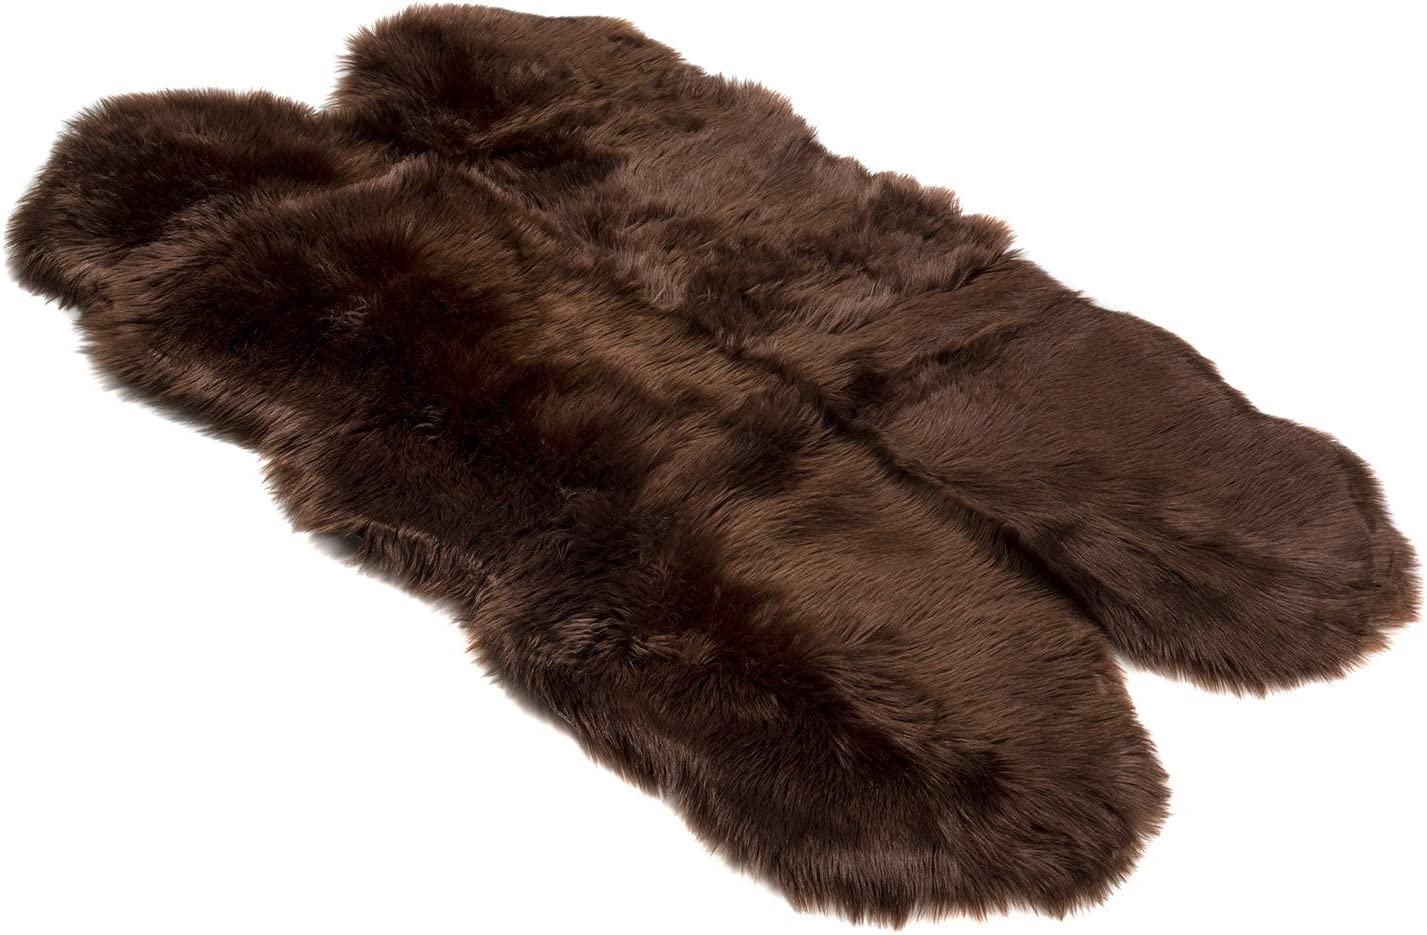 Silky Super Soft Brown Faux Sheepskin Shag Rug Faux Fur - Machine Washable Great for Photography or Decor Get The Real Look Without Harming Animals (Quad Pelt (3 feet x 5 feet)